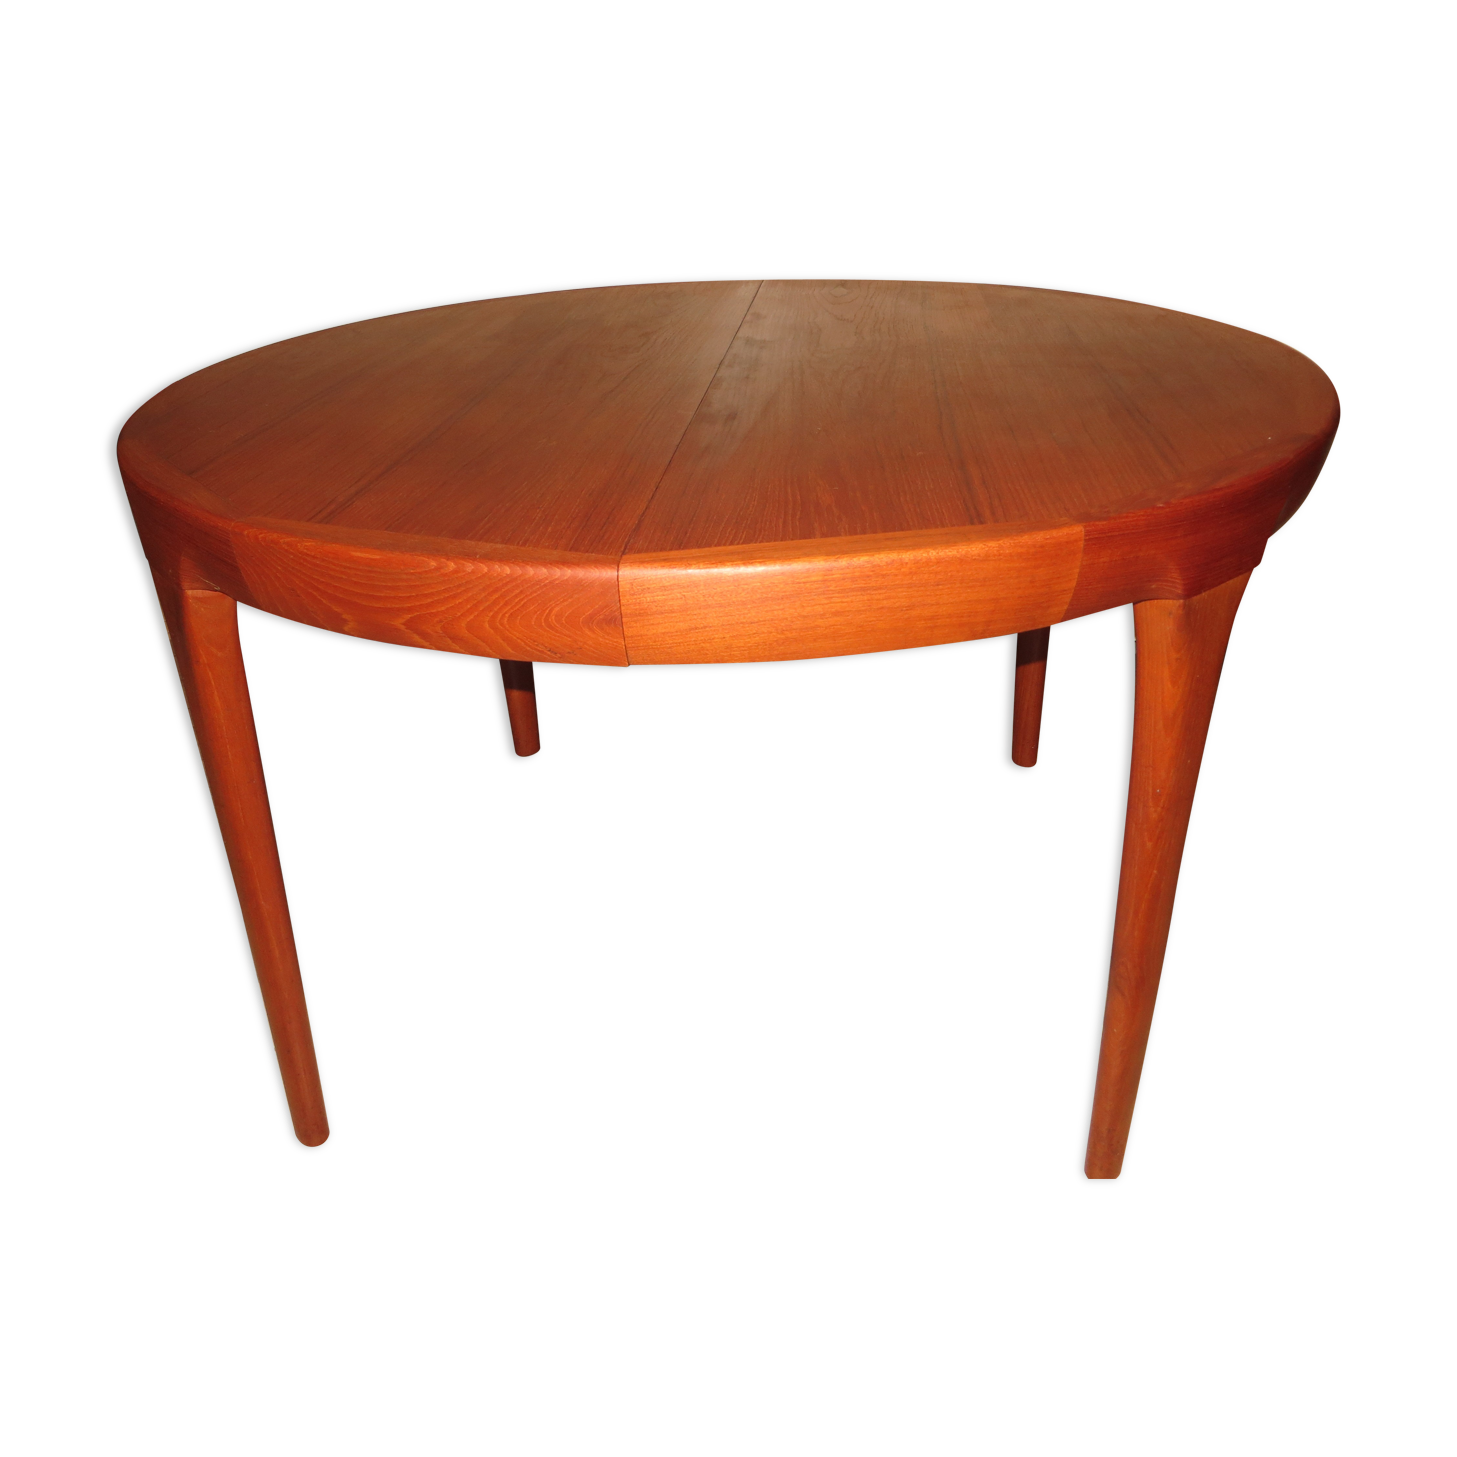 Table de salle a manger originale great dcoration de for Table salle a manger originale